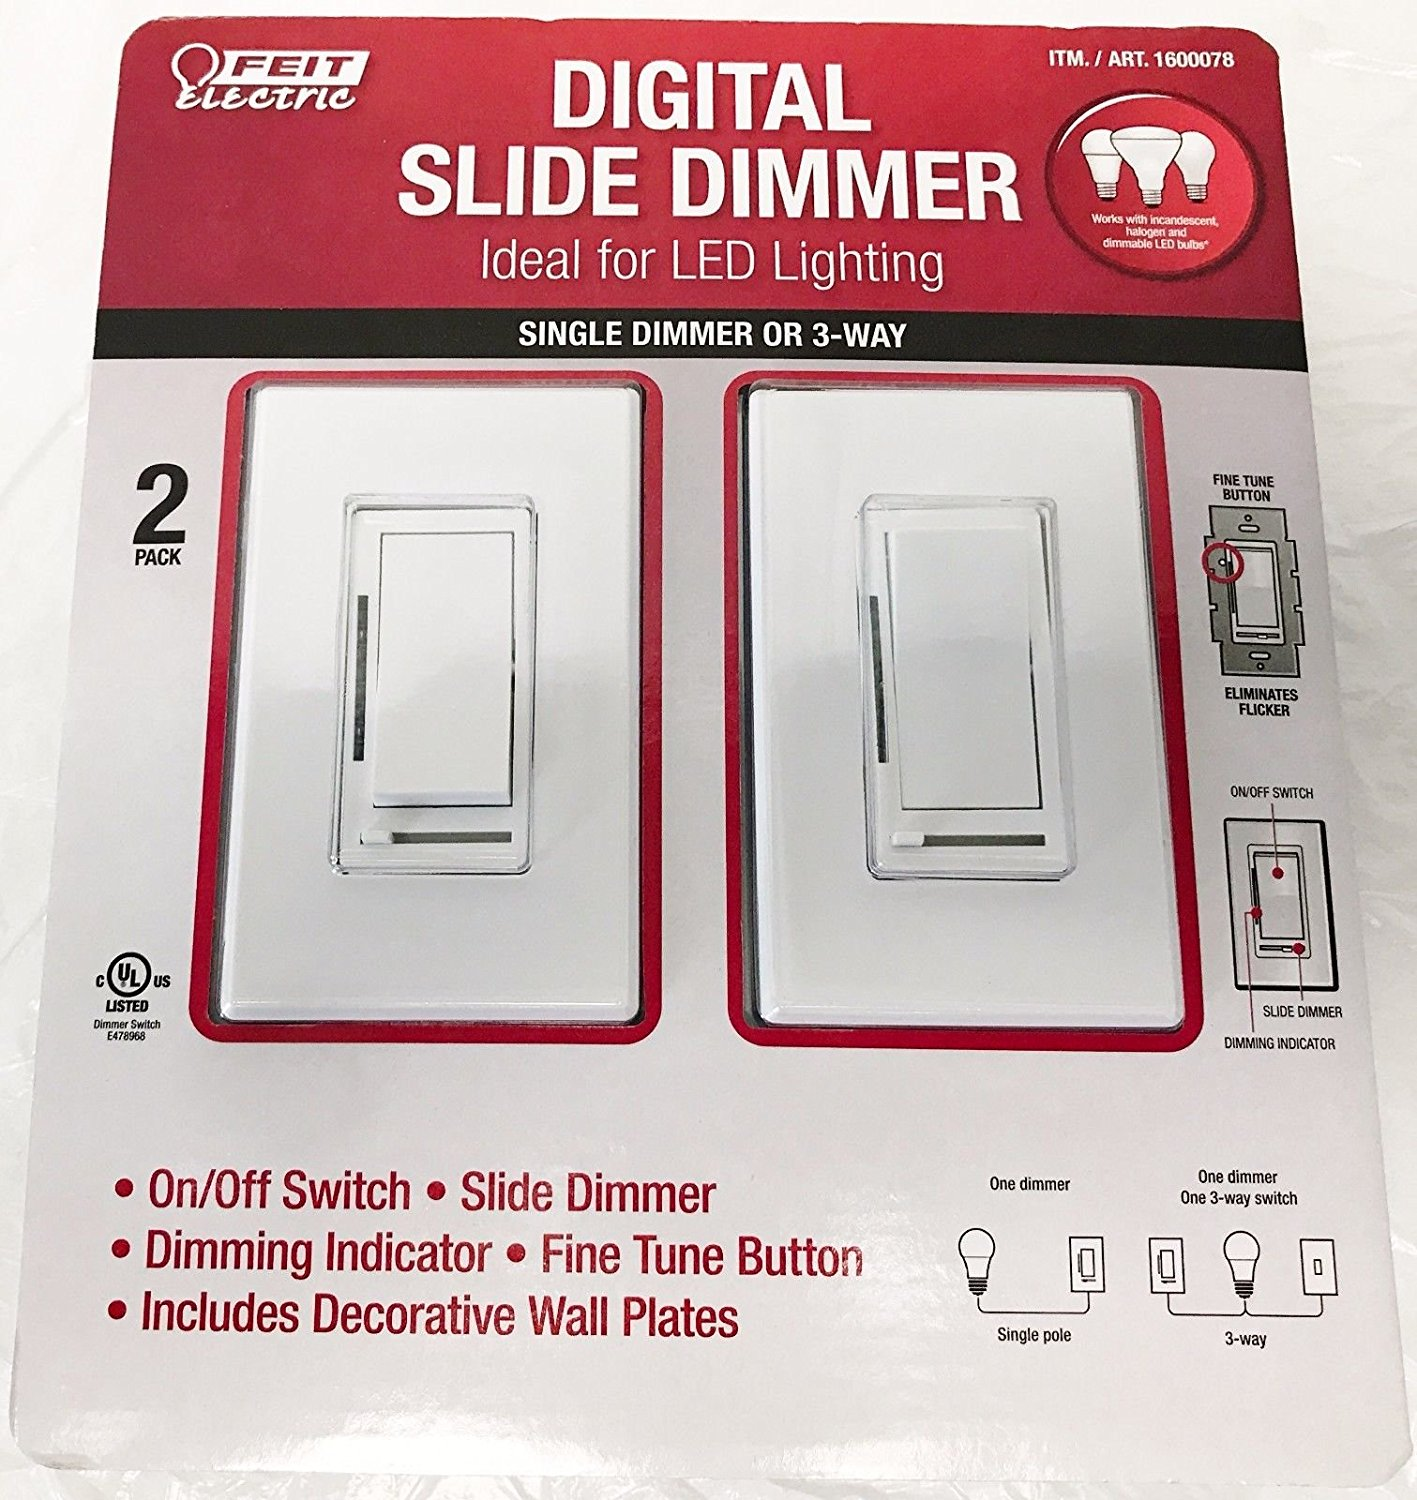 Feit Electric Digital Slide Dimmer Ideal for LED Lighting 2 Pack - NEW, Open Box